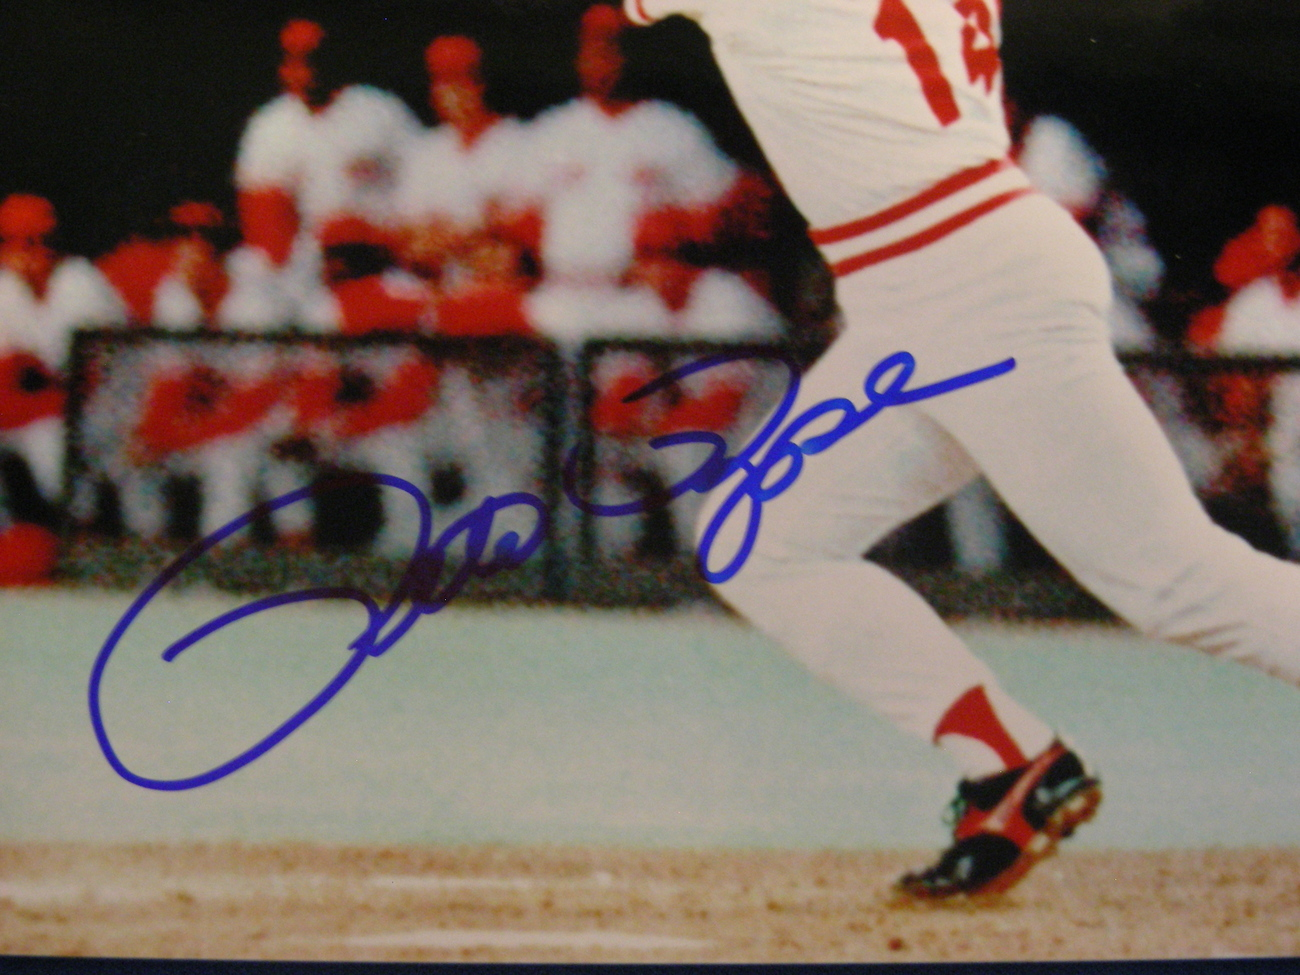 """PETE ROSE """"CHARLIE HUSTLE"""" 4256 HIT KING 3X WSC SIGNED AUTO 8X10 PHOTO GLOBAL"""